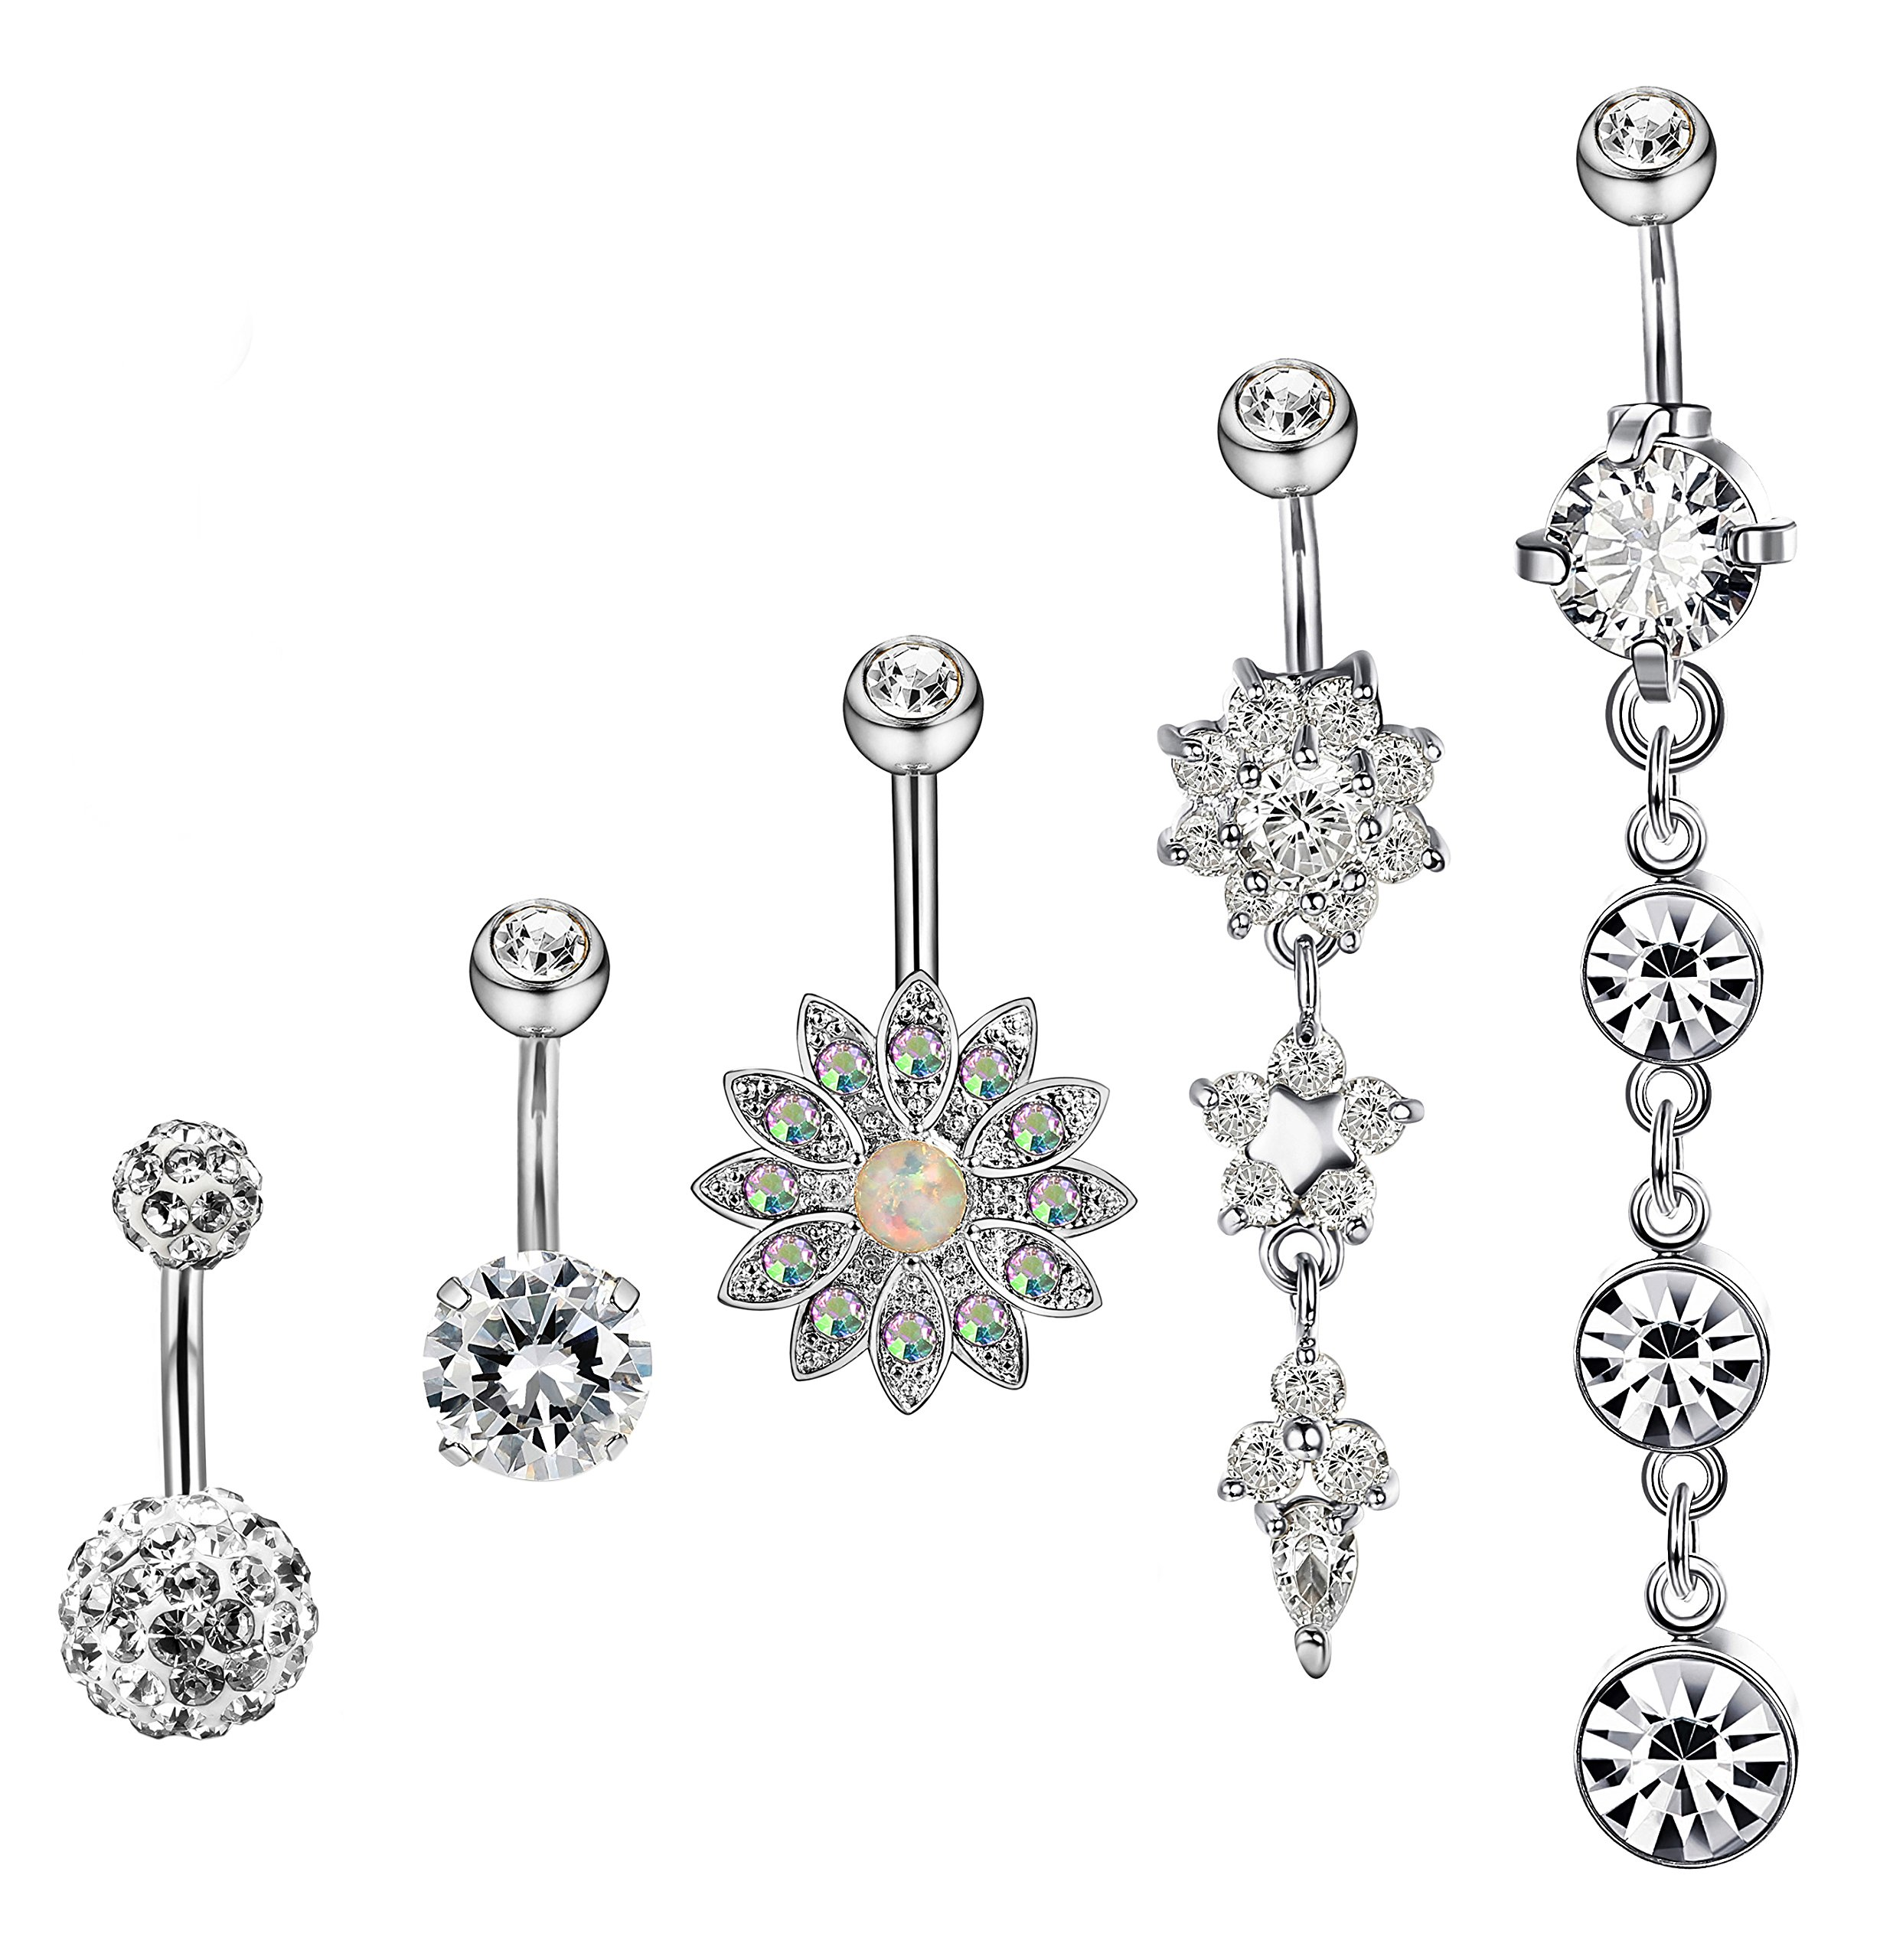 Hanpabum 5Pcs 14G Surgical Stainless Steel Dangle Belly Button Rings for Women Girls CZ Navel Rings Body Piercing Jewelry (A:Silver Tone)